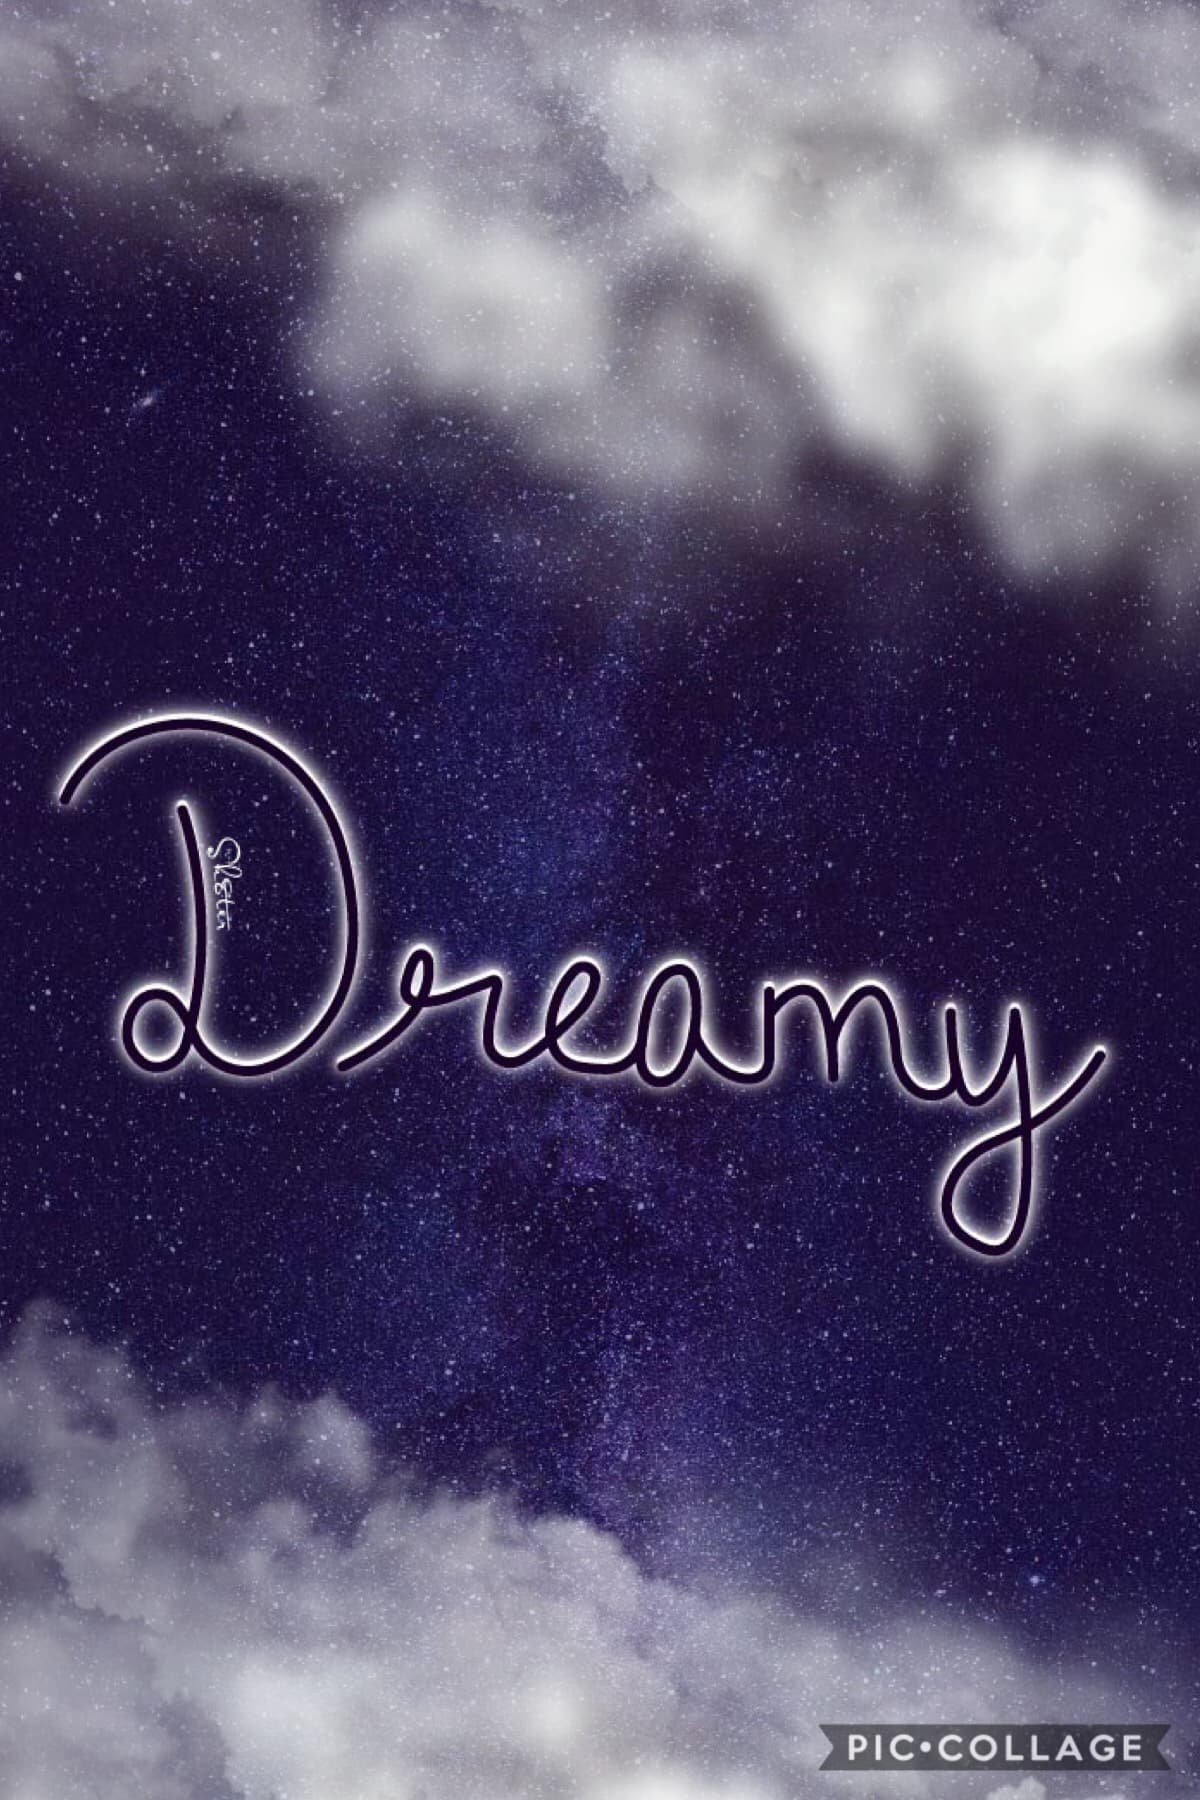 My hand lettering :) Dreamy🌙✨💜 #dream #handwriting #stars #quickpost #dreamy #clouds